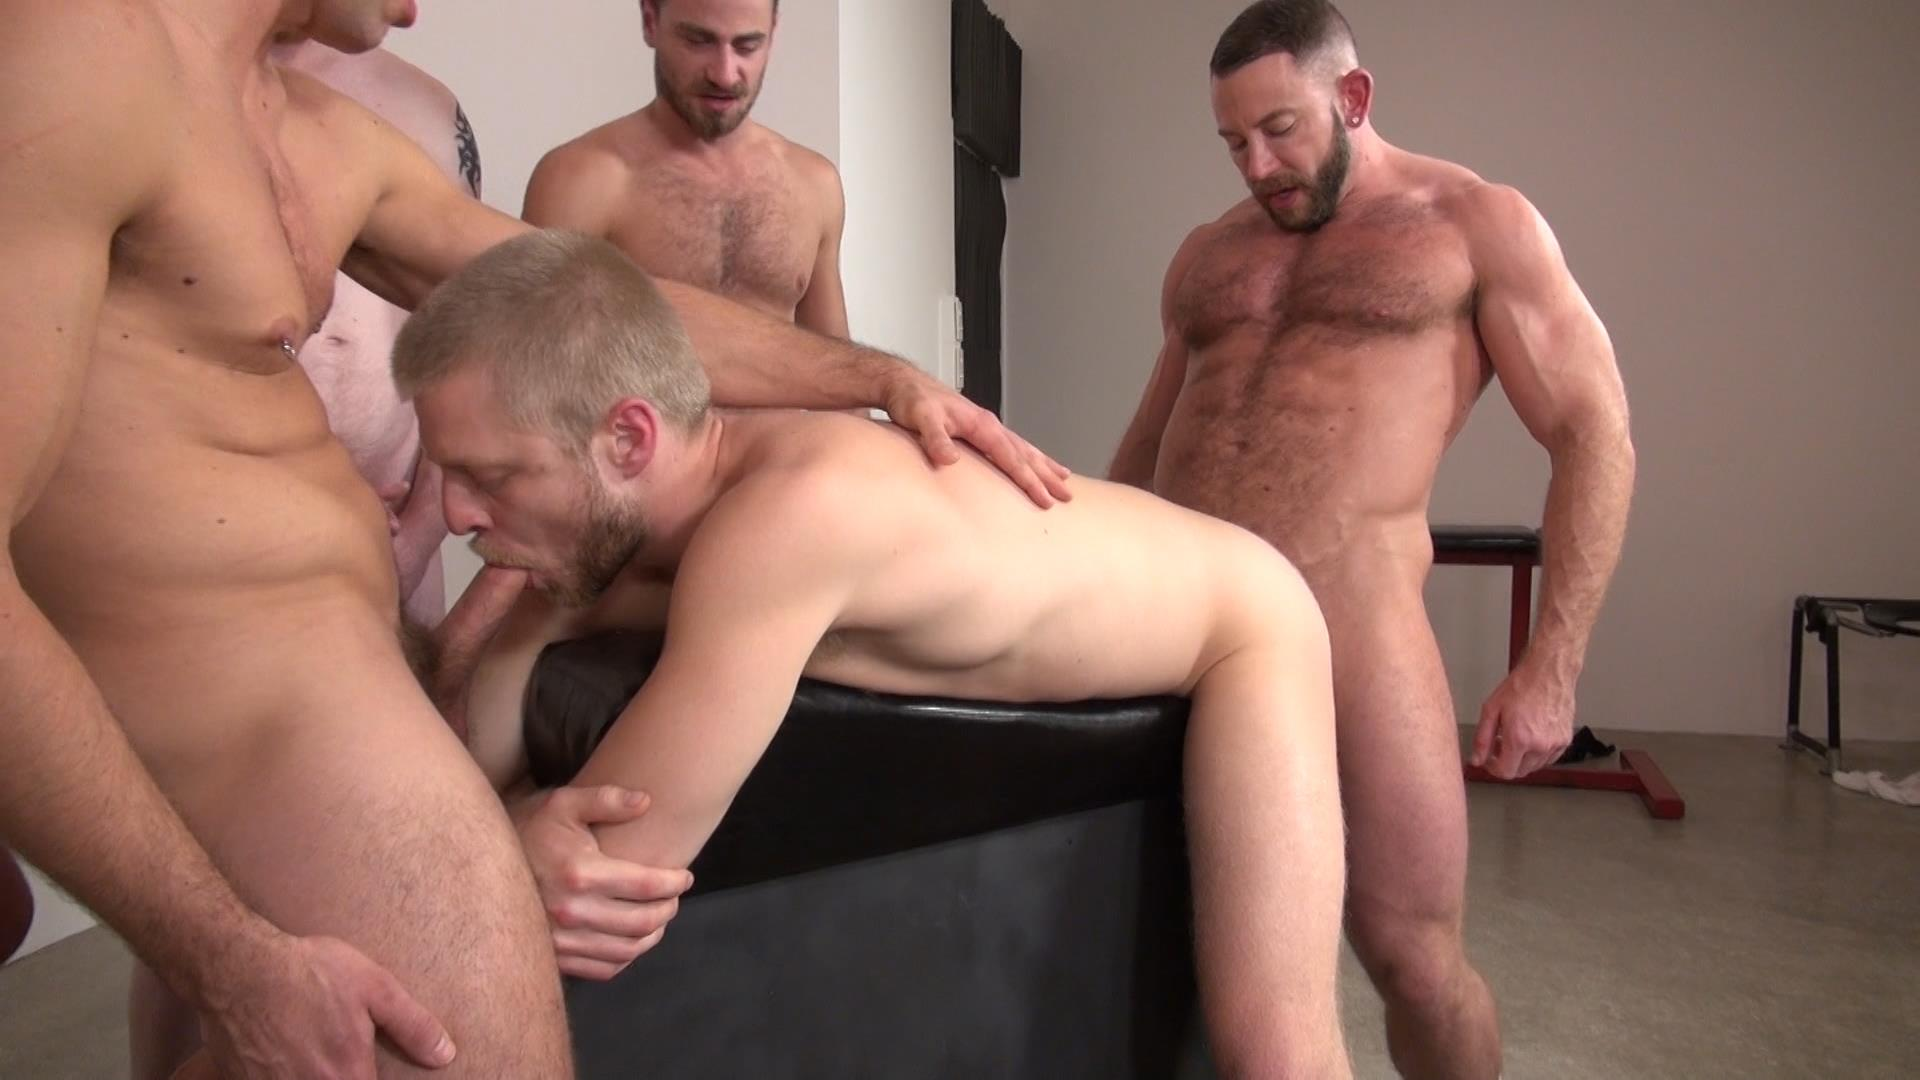 Raw and rough gay bareback sex